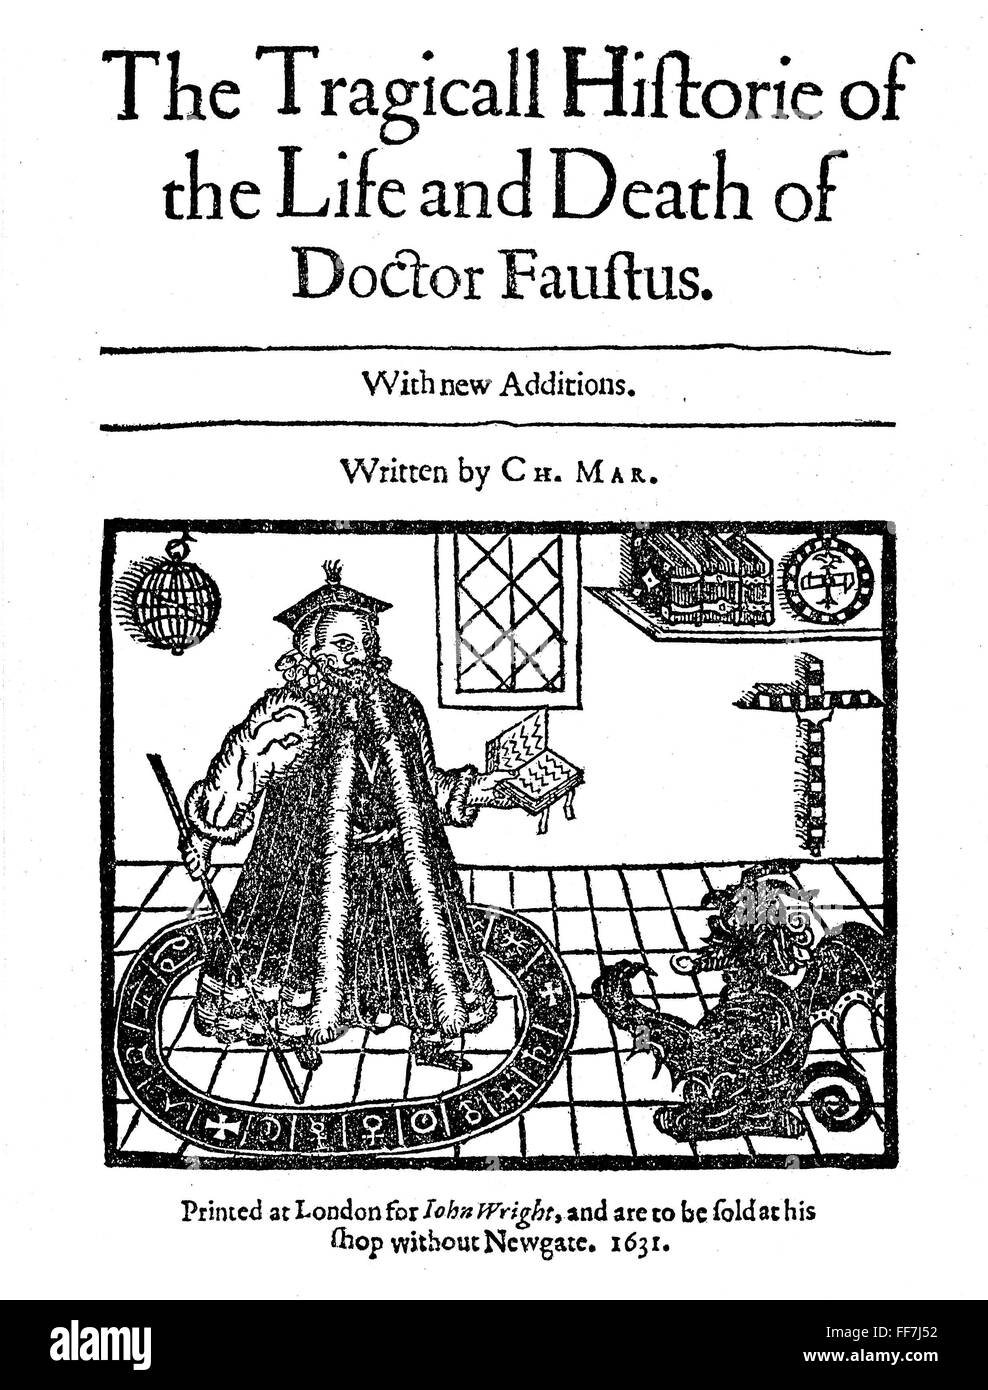 an analysis of the character of faustus by christopher marlow Christopher marlowe in this tragic history of doctor faustus (a play), shows   style of his writing, few of which we are going to analyze from the work  a  morality play is a type of medieval drama using allegorical characters.